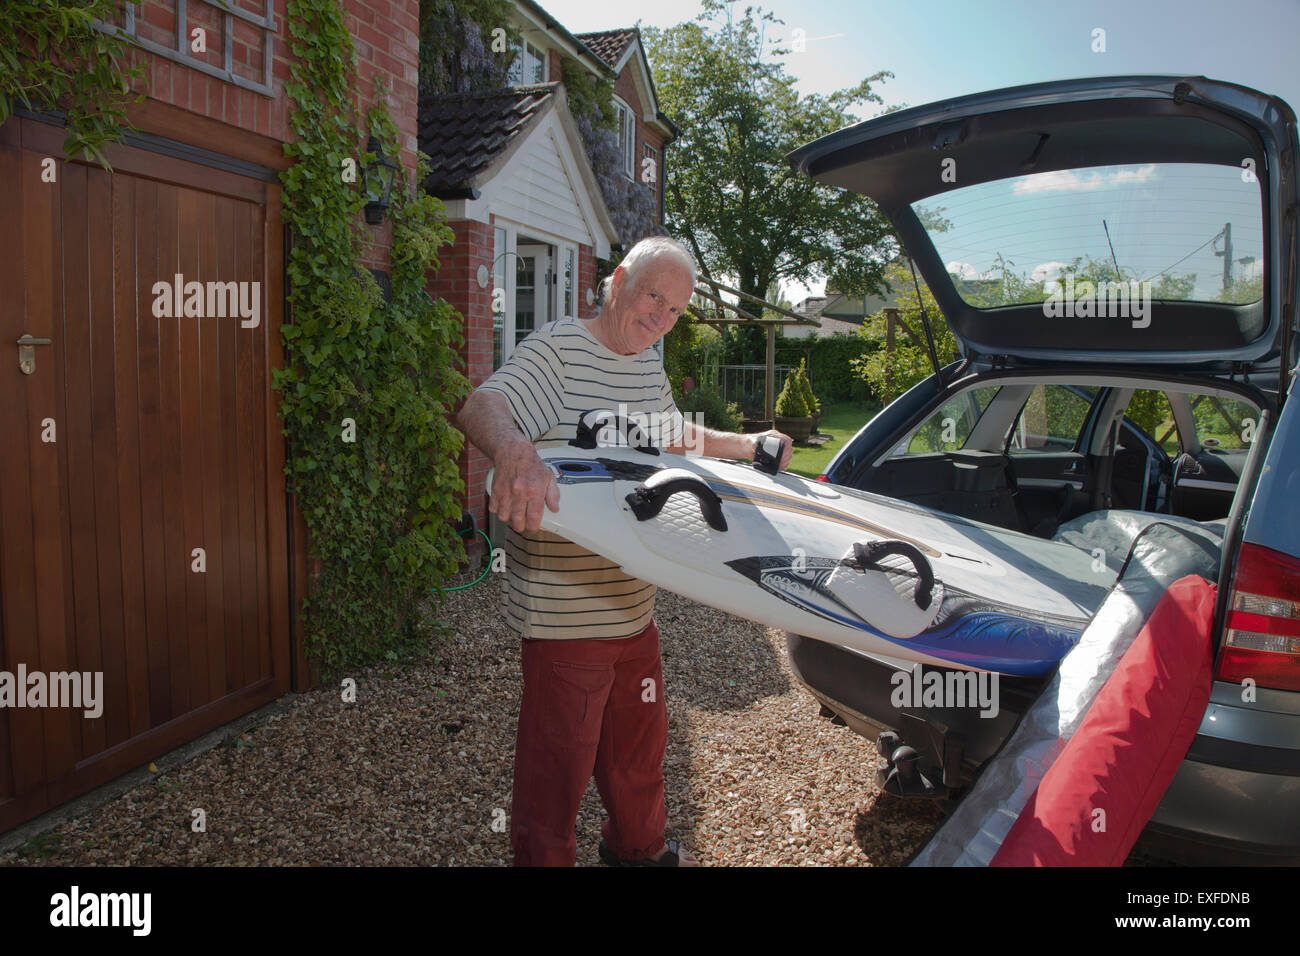 Senior man removing surfboard from car boot - Stock Image